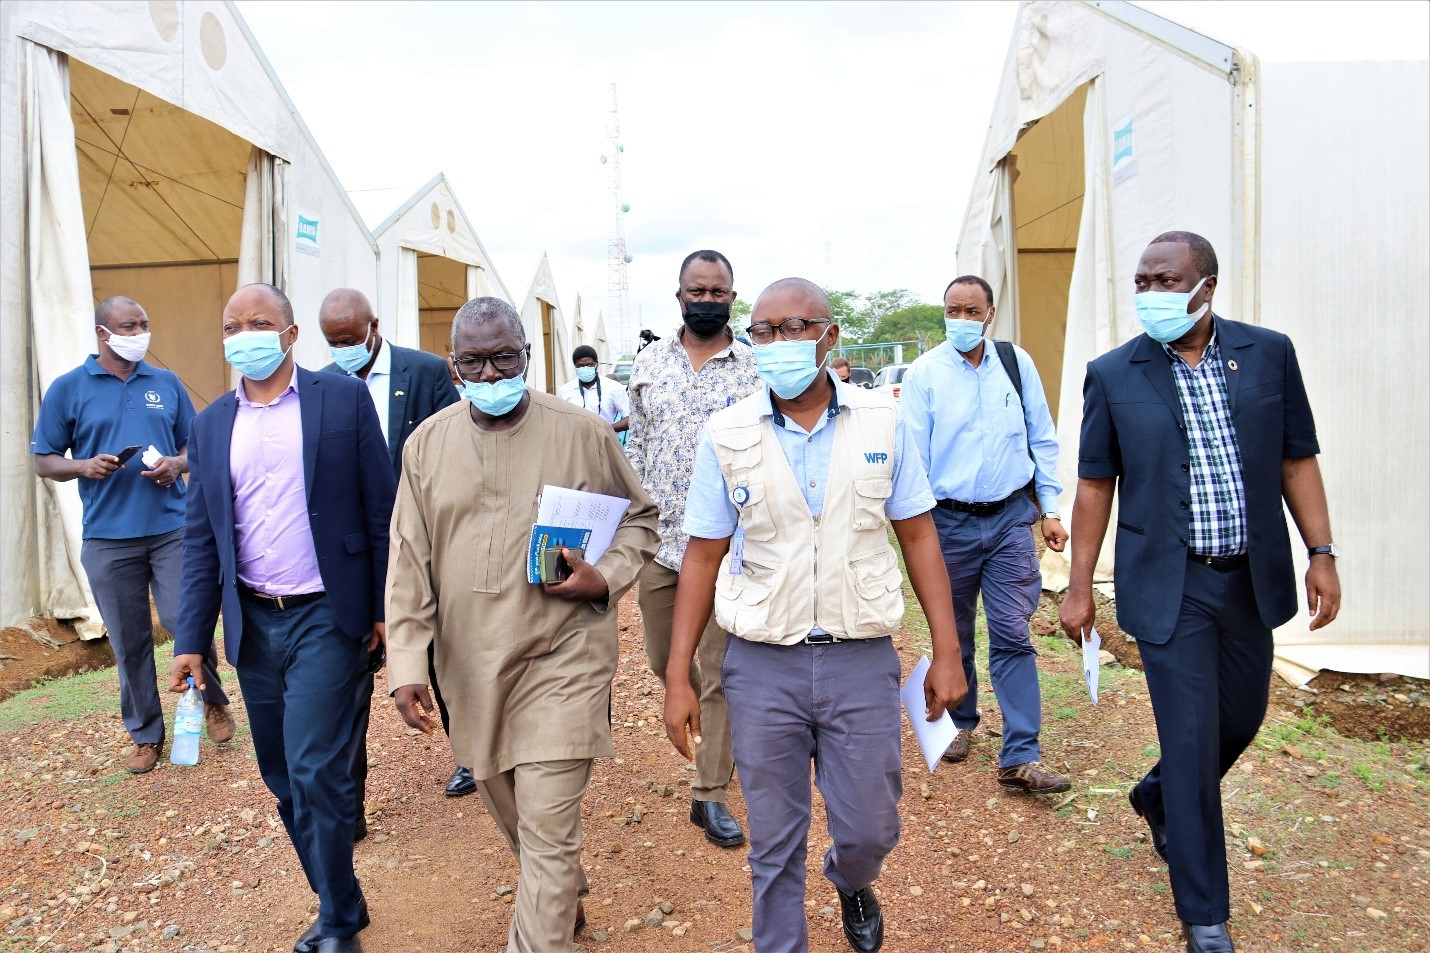 UN Resident Coordinator visits project sites in 3 Districts: Delivering jointly as One UN in Sierra Leone,